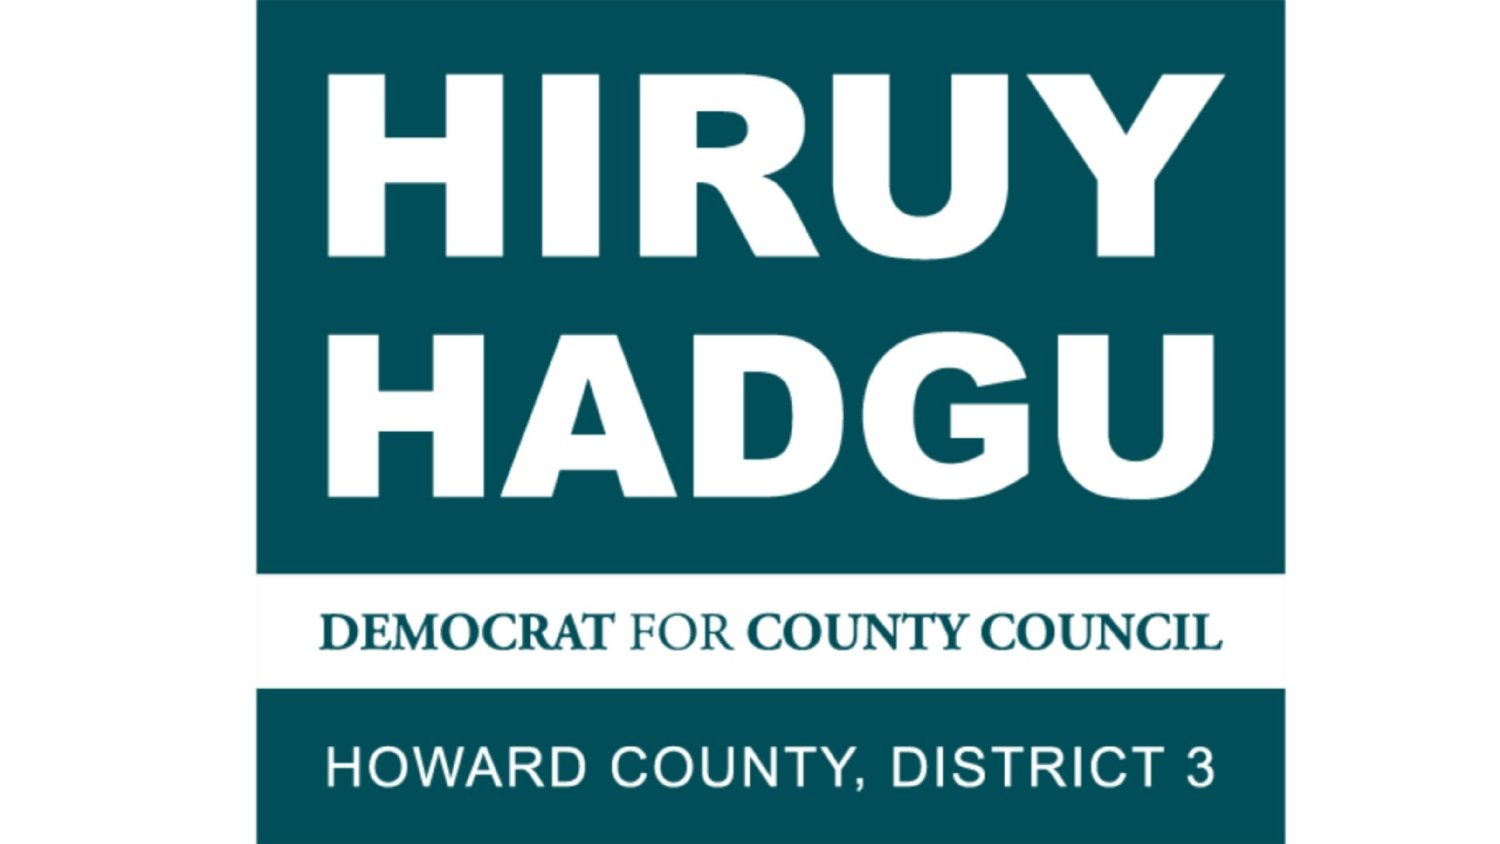 HIRUY HADGU FOR COUNTY COUNCIL